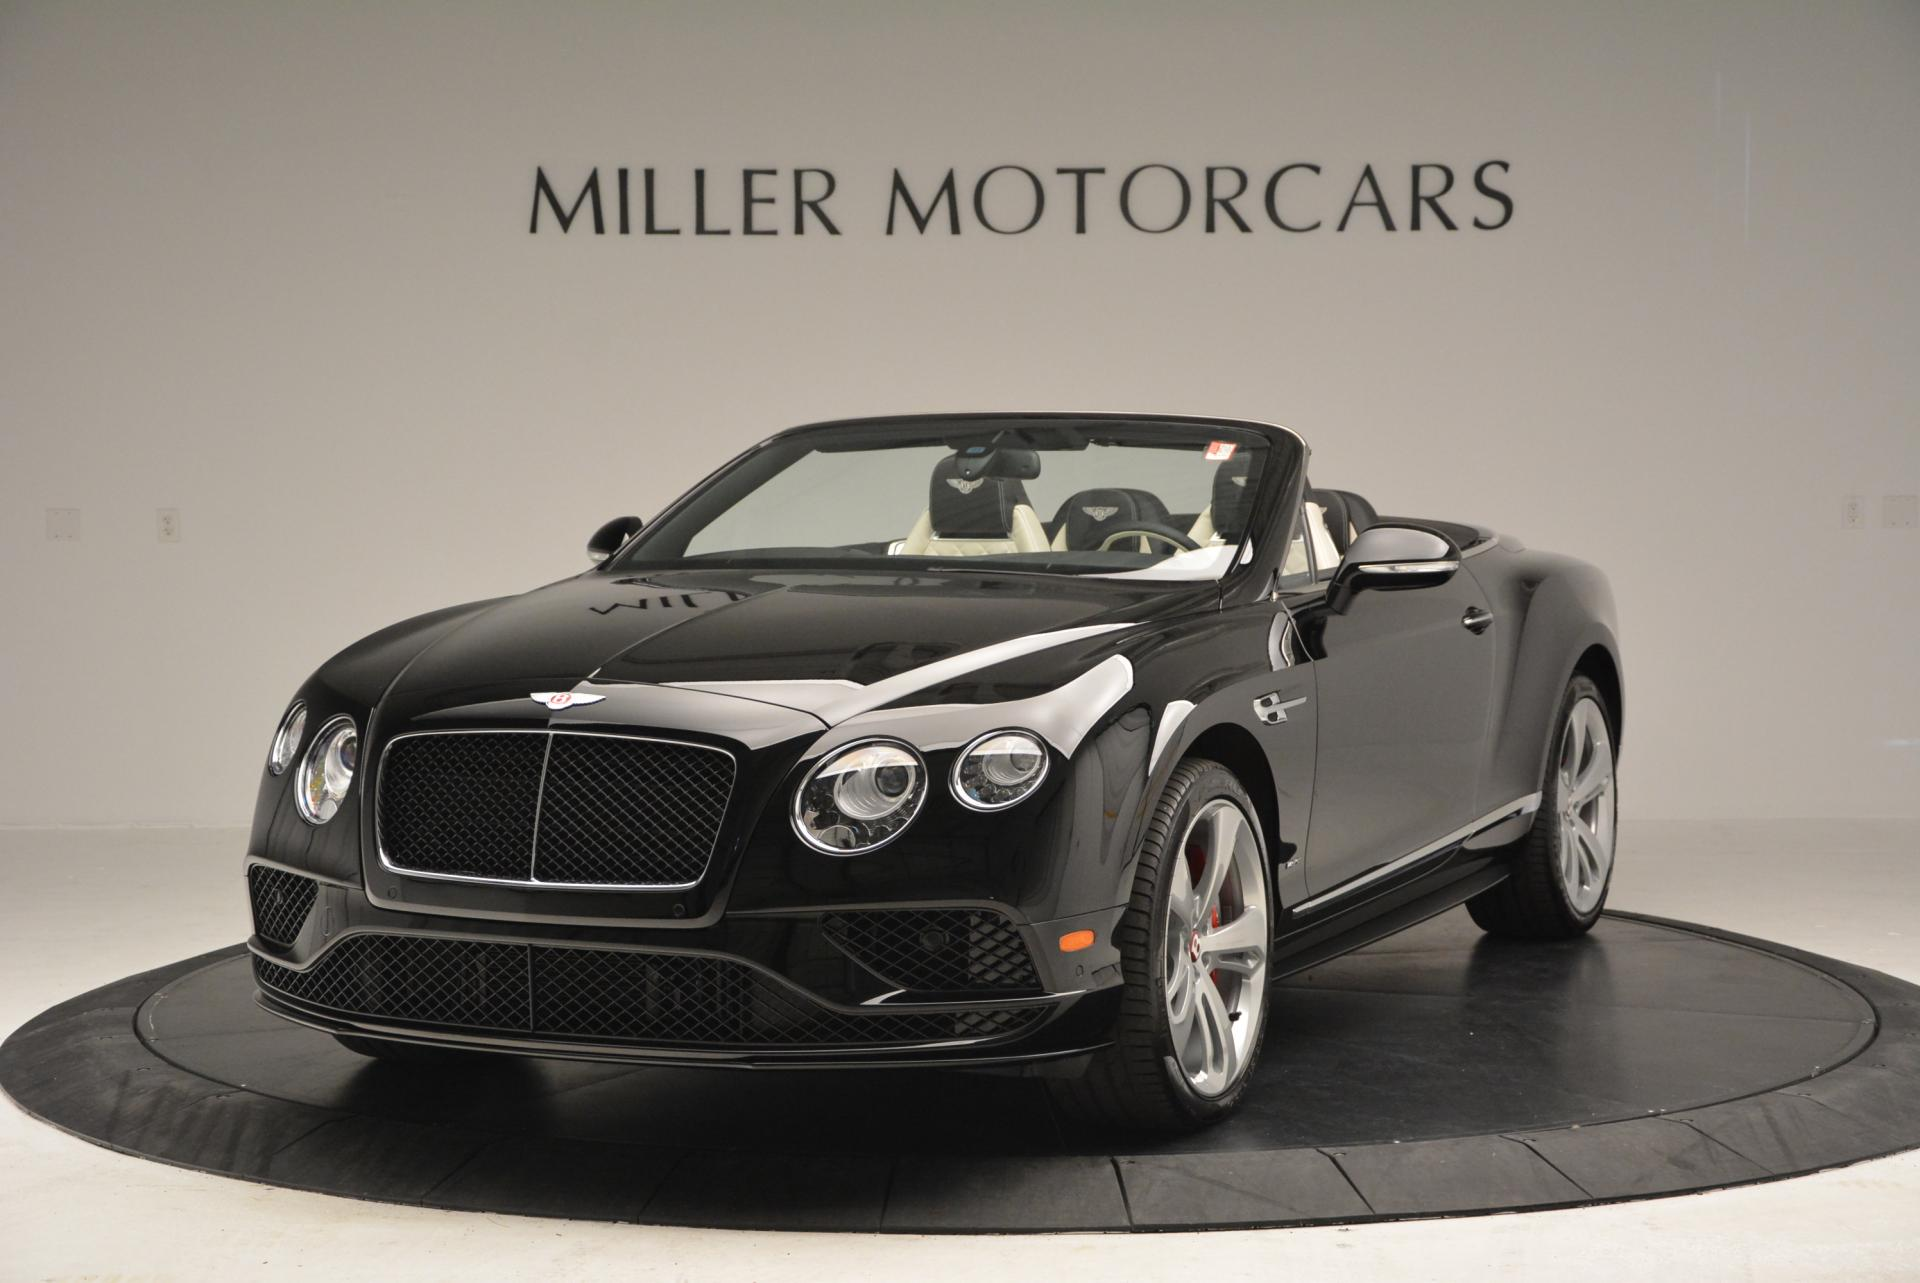 New 2016 Bentley Continental GT V8 S Convertible for sale Sold at Bentley Greenwich in Greenwich CT 06830 1